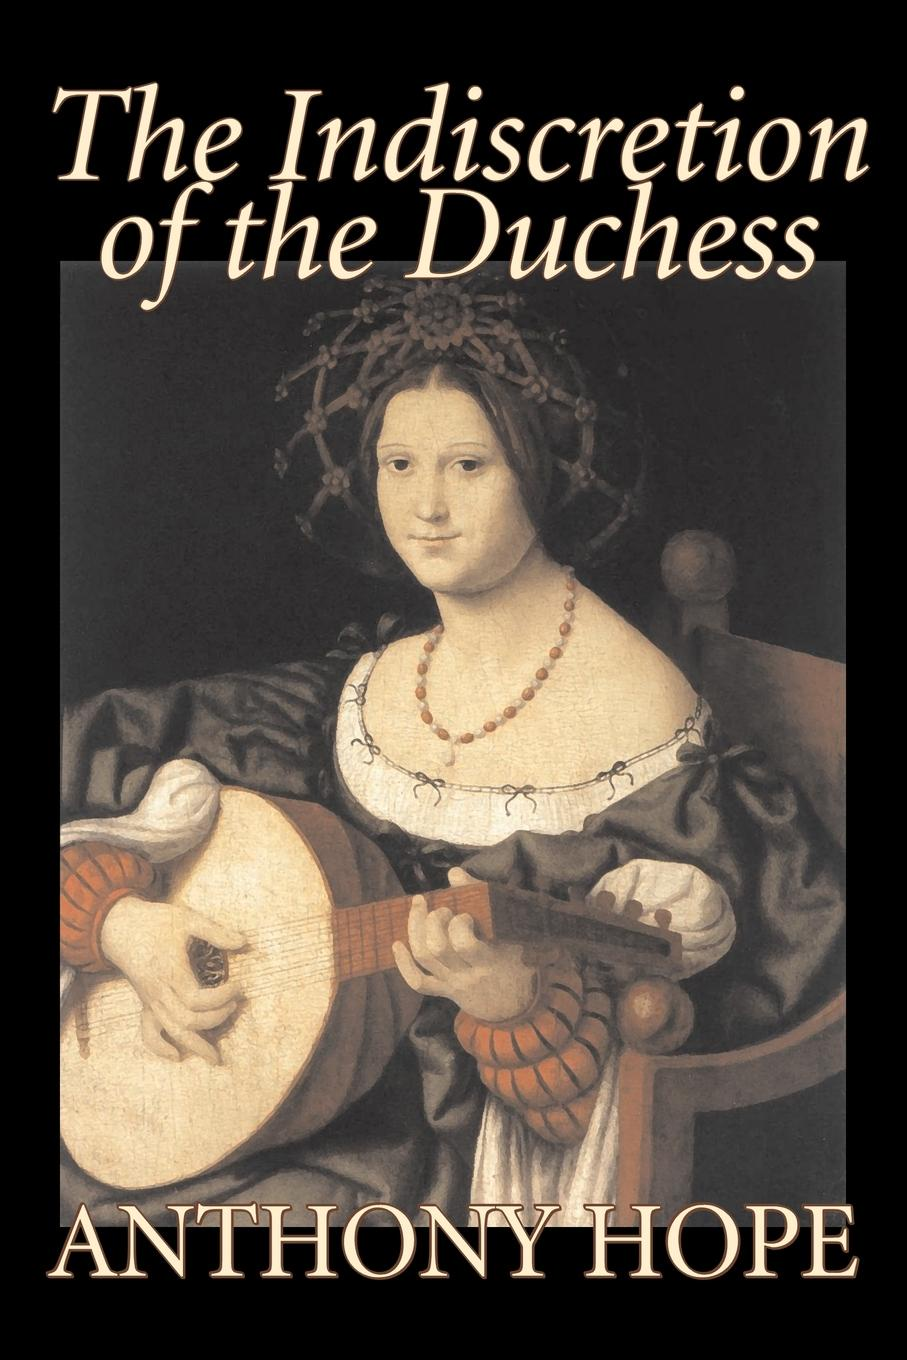 Anthony Hope The Indiscretion of the Duchess by Anthony Hope, Fiction, Classics, Action & Adventure nina rae springfields the power of hope